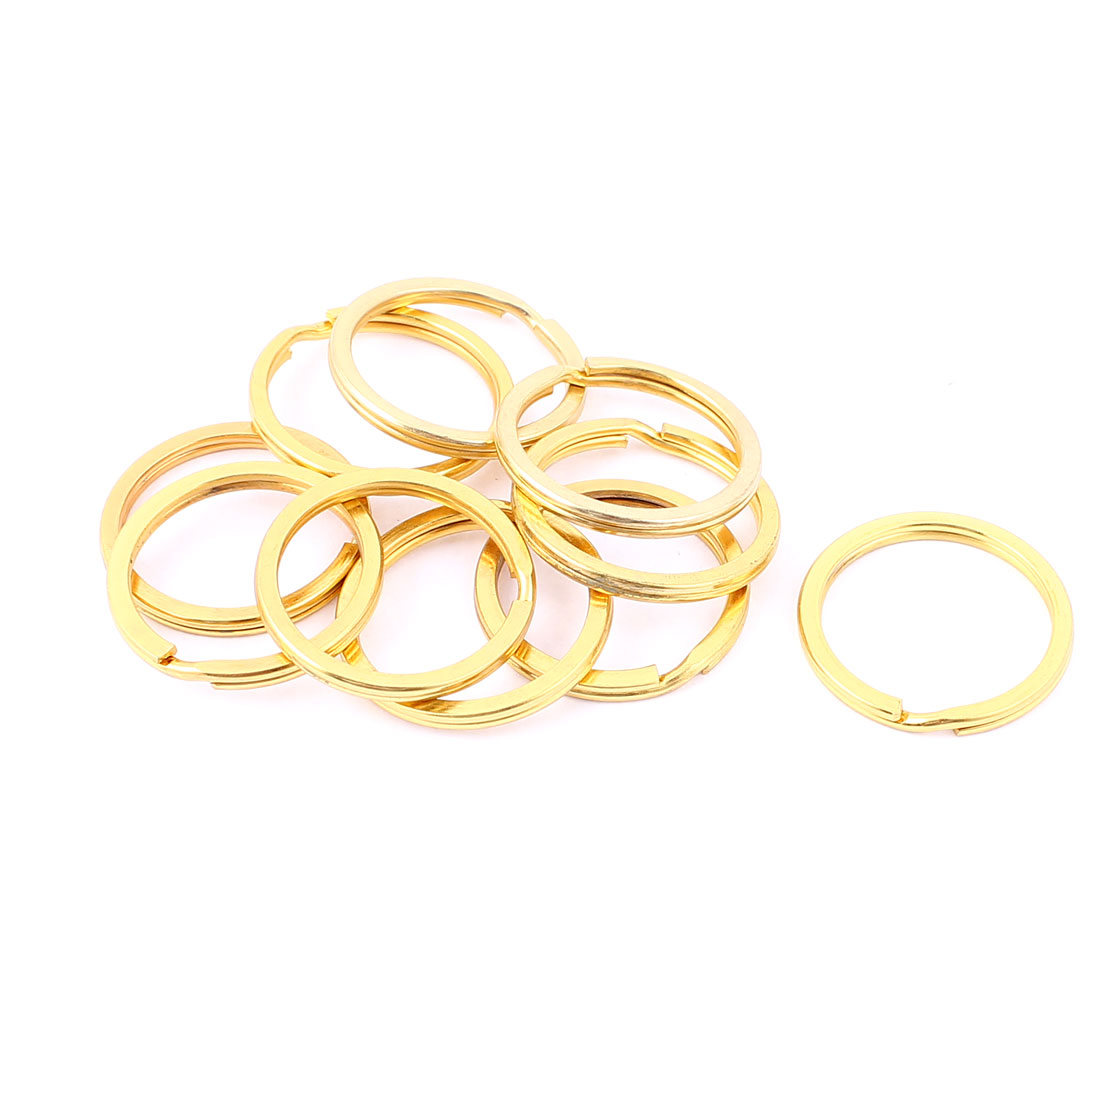 "10 PCS Gold Tone 1.02"" Dia Metal Rings Replacement Split Loop Keyring Keys Holder"